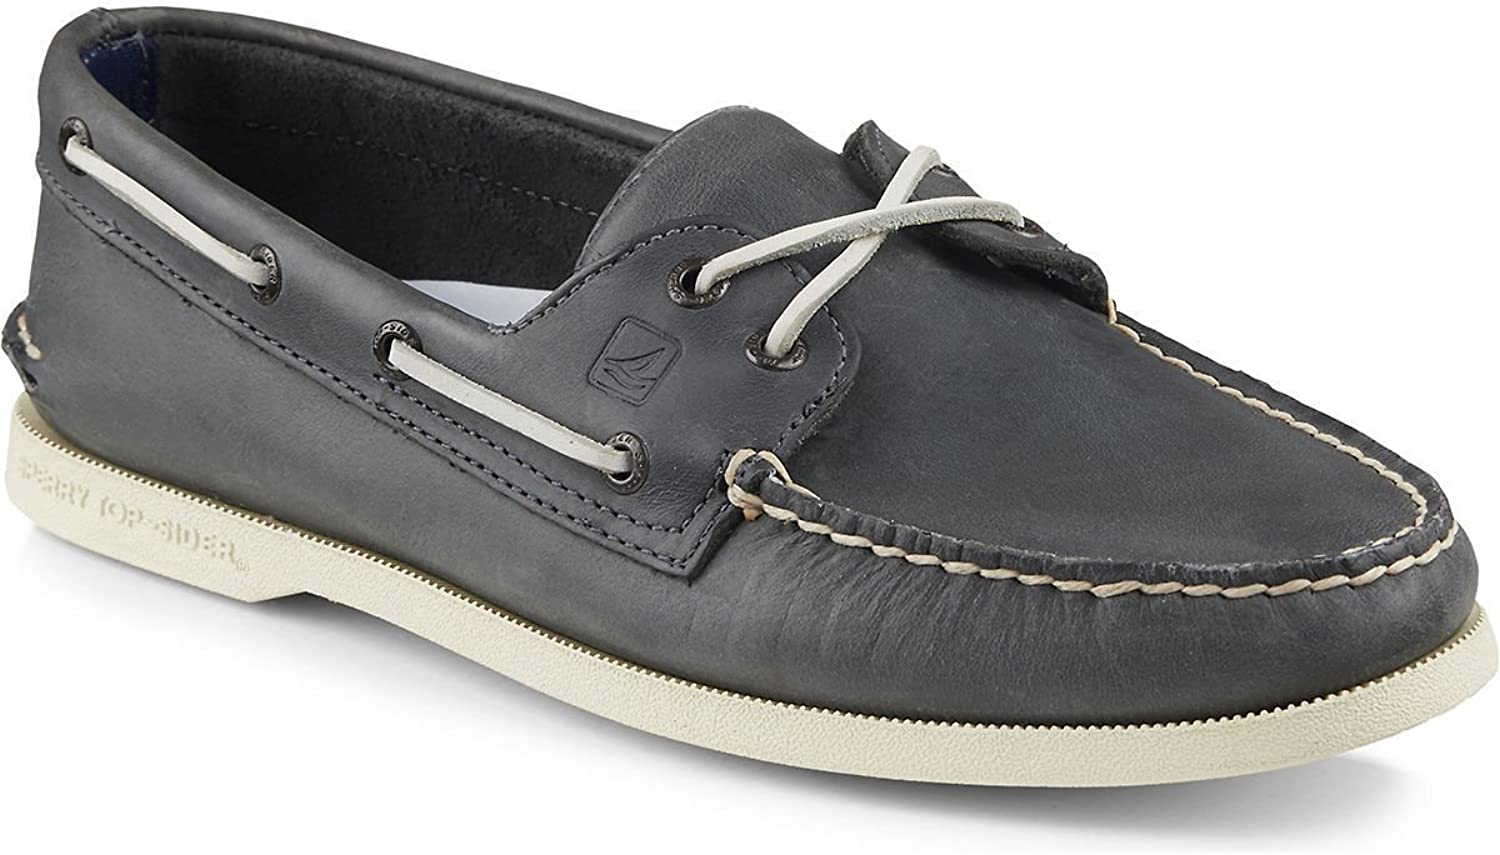 Sperry Top-Sider Men's Authentic Original 2-Eye Cross Lace Boat shoes Navy